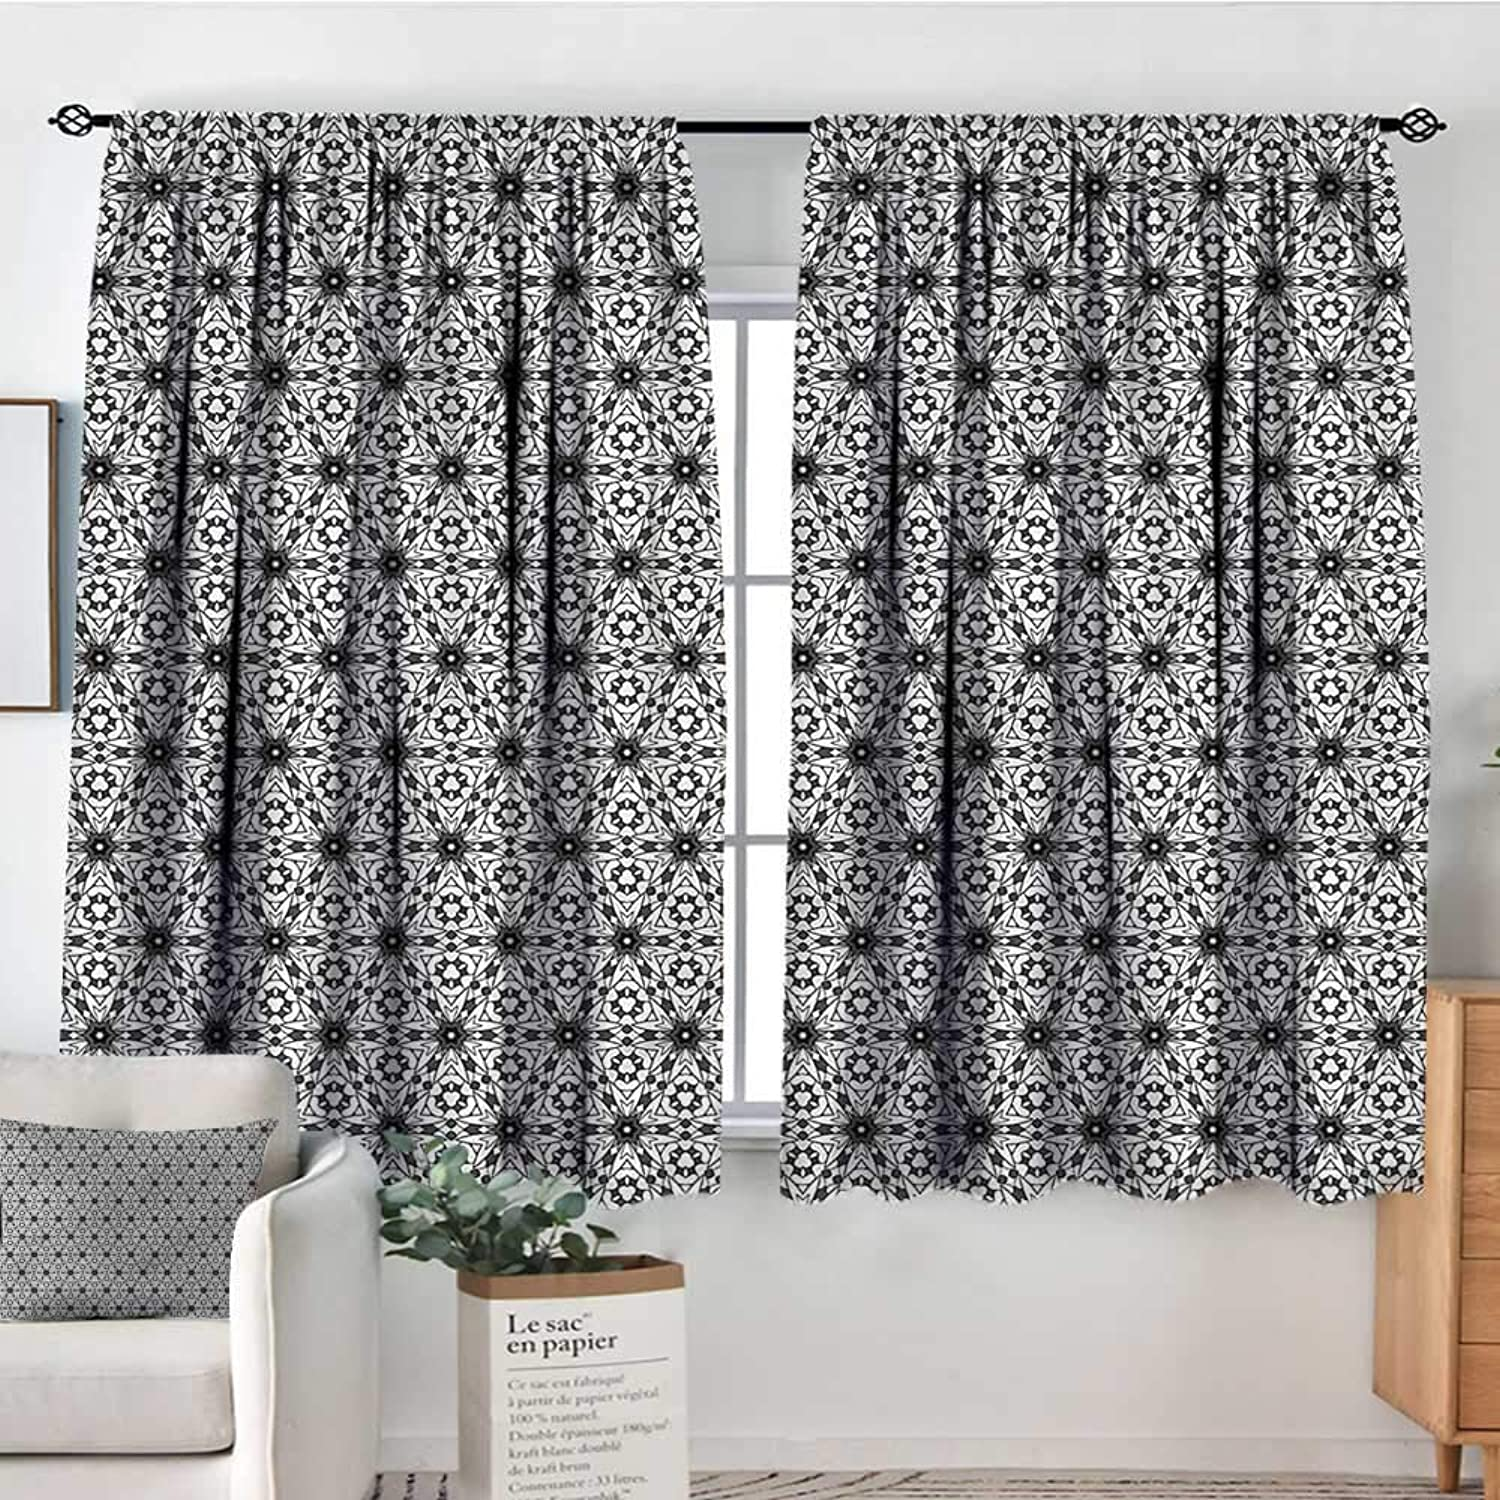 Sanring Grey and White,Backout Curtain Boho Floral Art 42 X63  Patterned Drape for Kids Bedroom